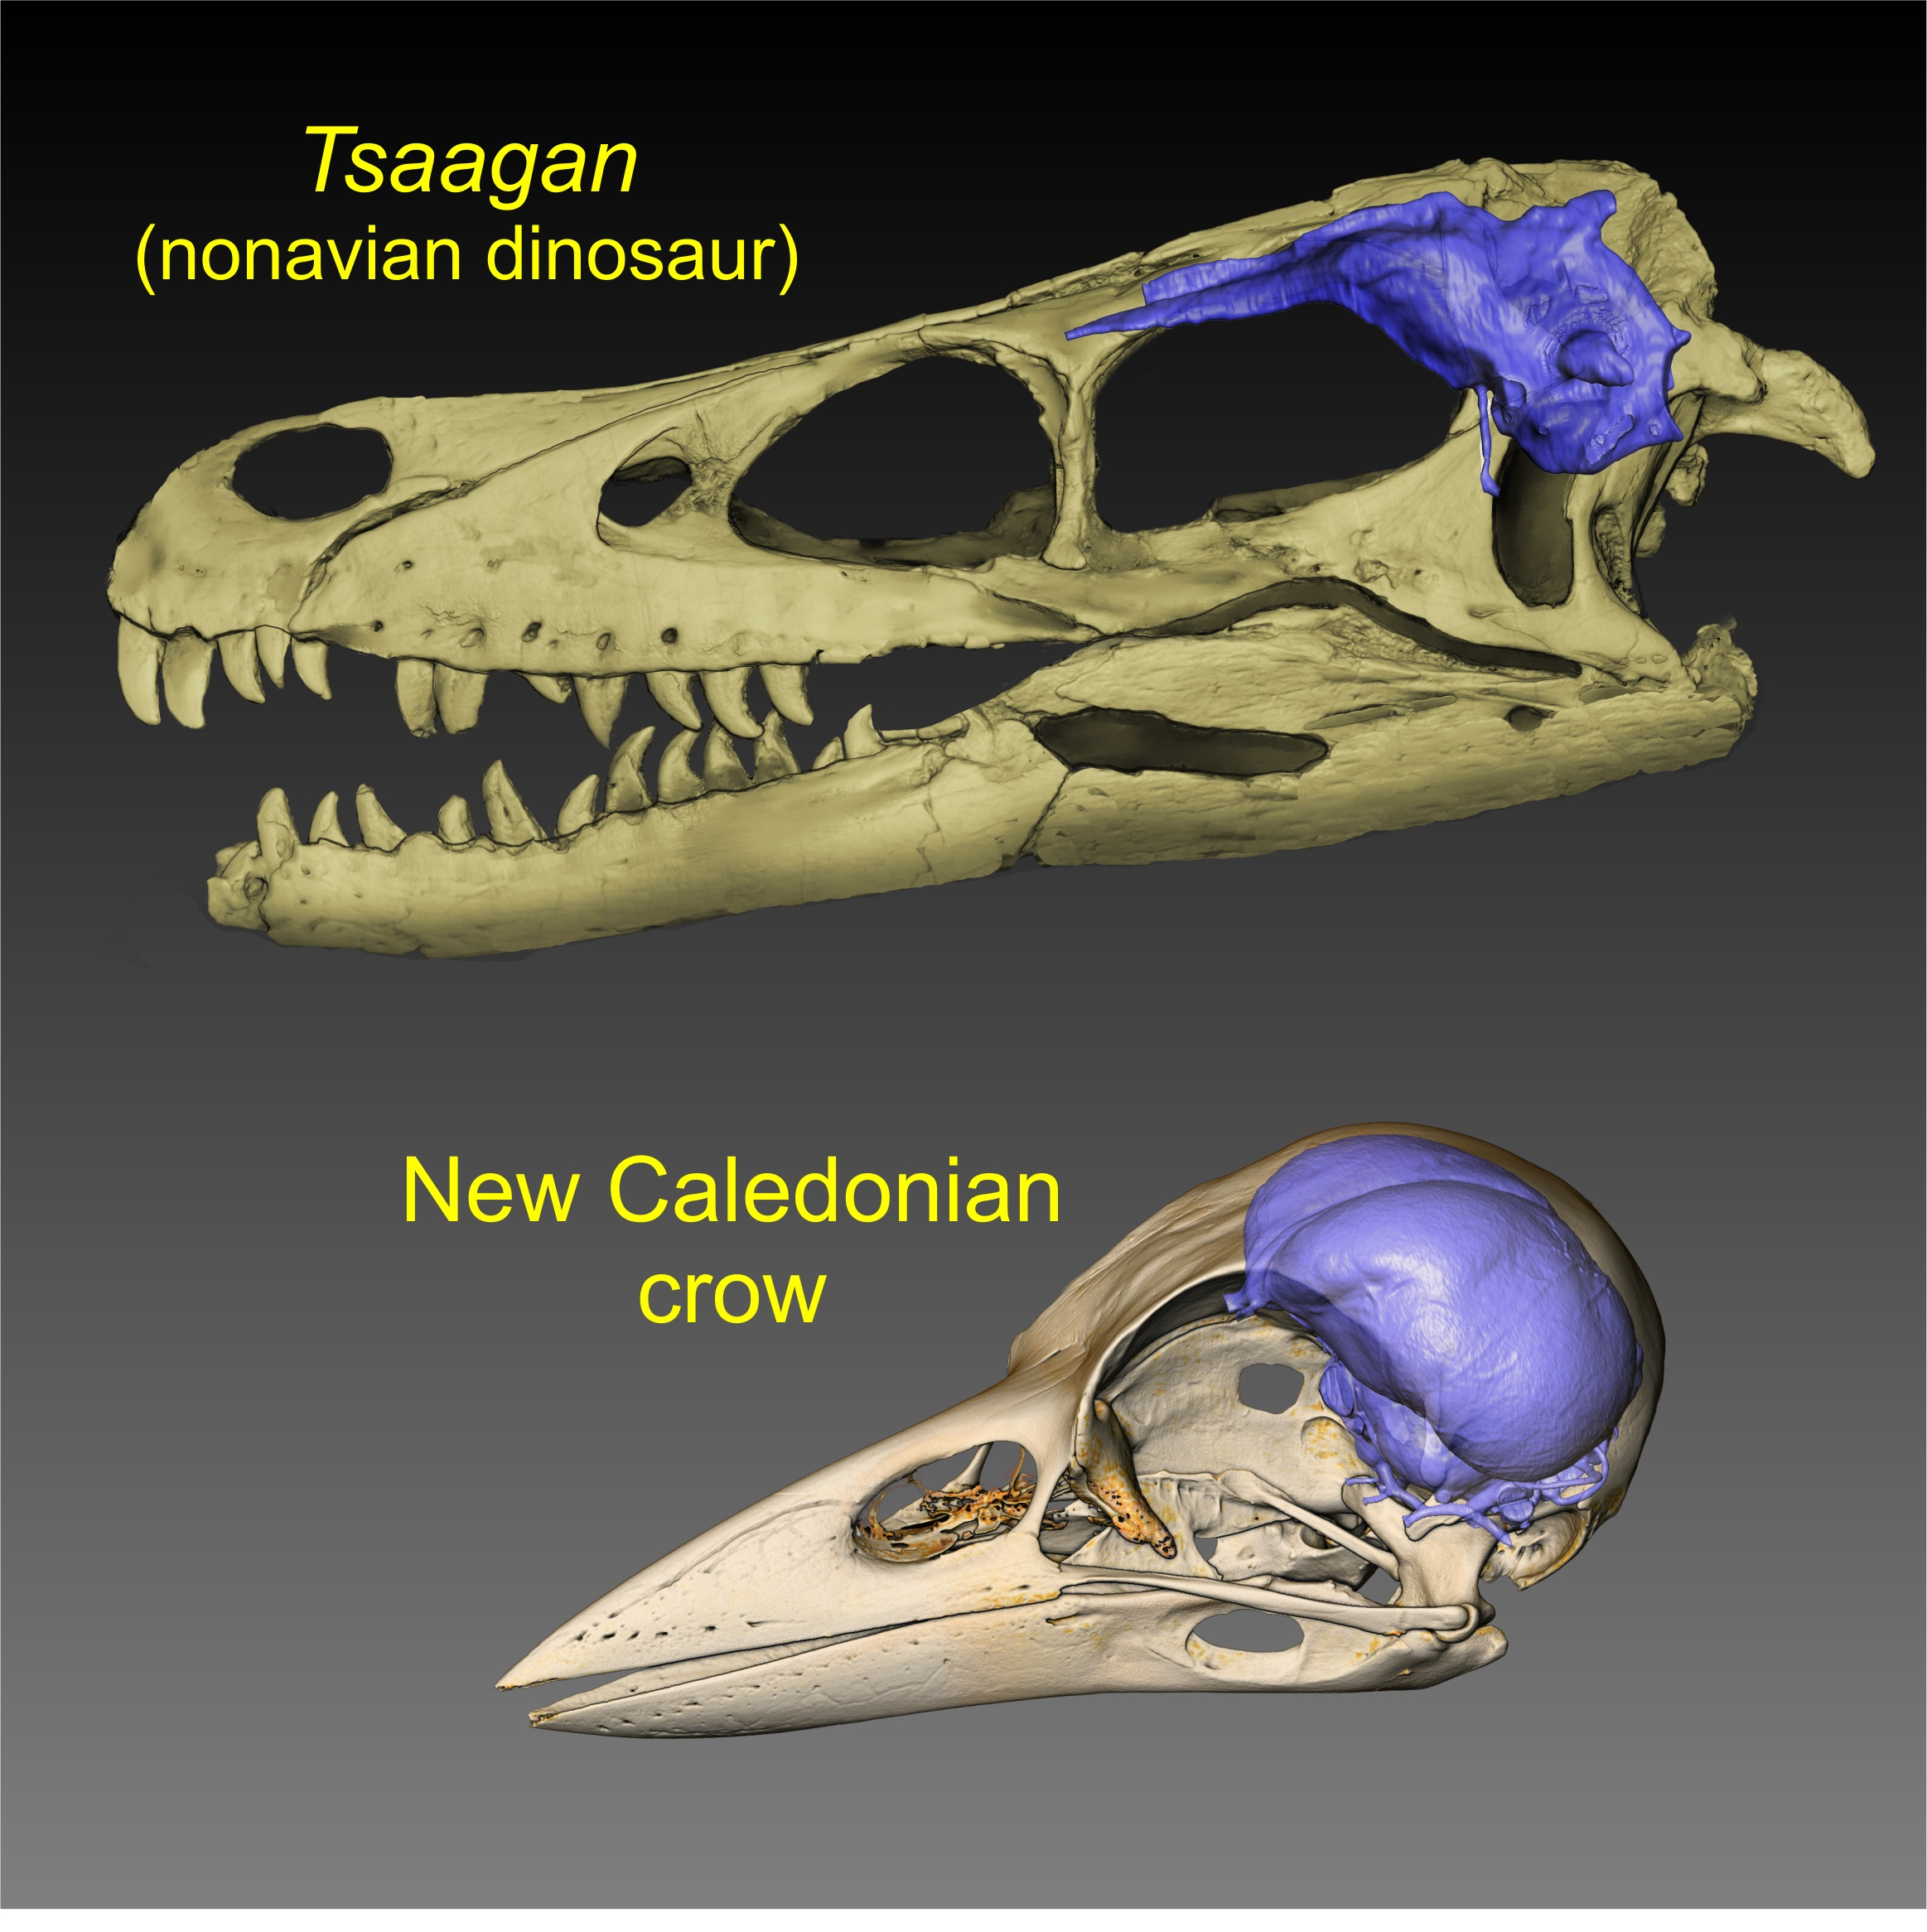 Visualizations of brain endocasts (blue) from the skulls of a dinosaur and a modern bird. Image courtesy of WitmerLab at Ohio University